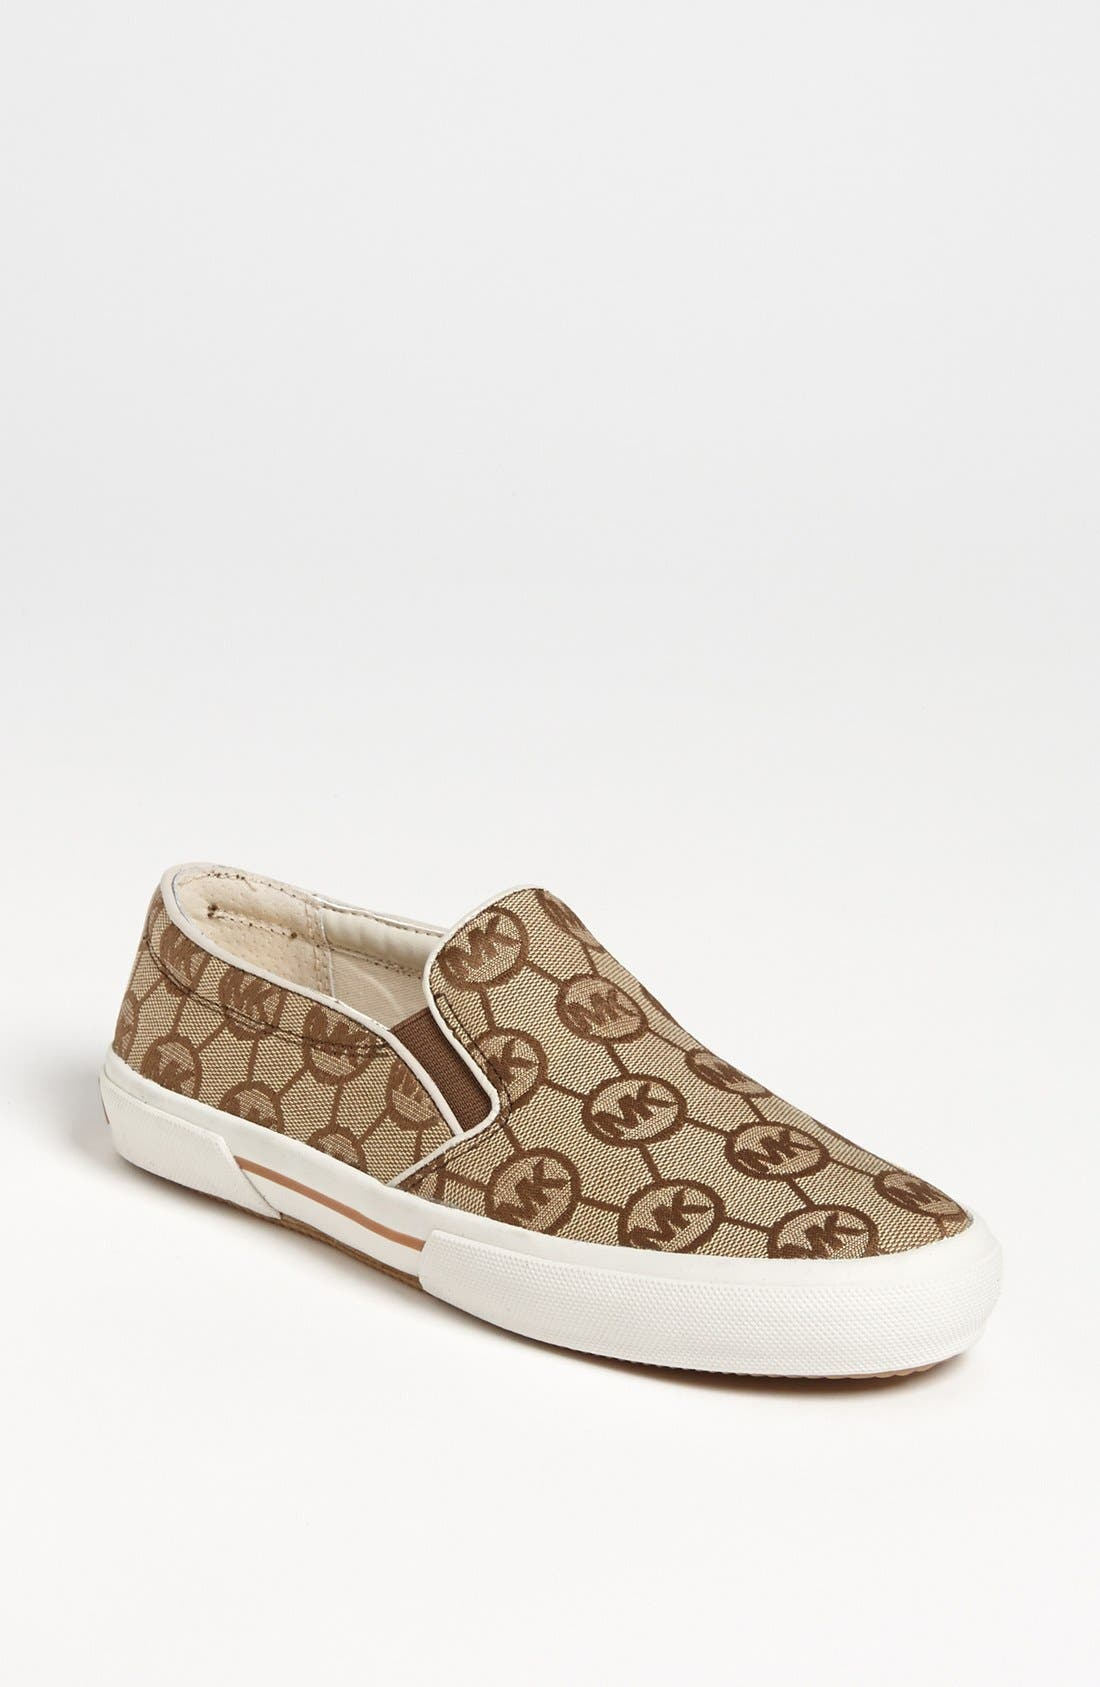 Alternate Image 1 Selected - MICHAEL Michael Kors 'Boerum' Slip-On